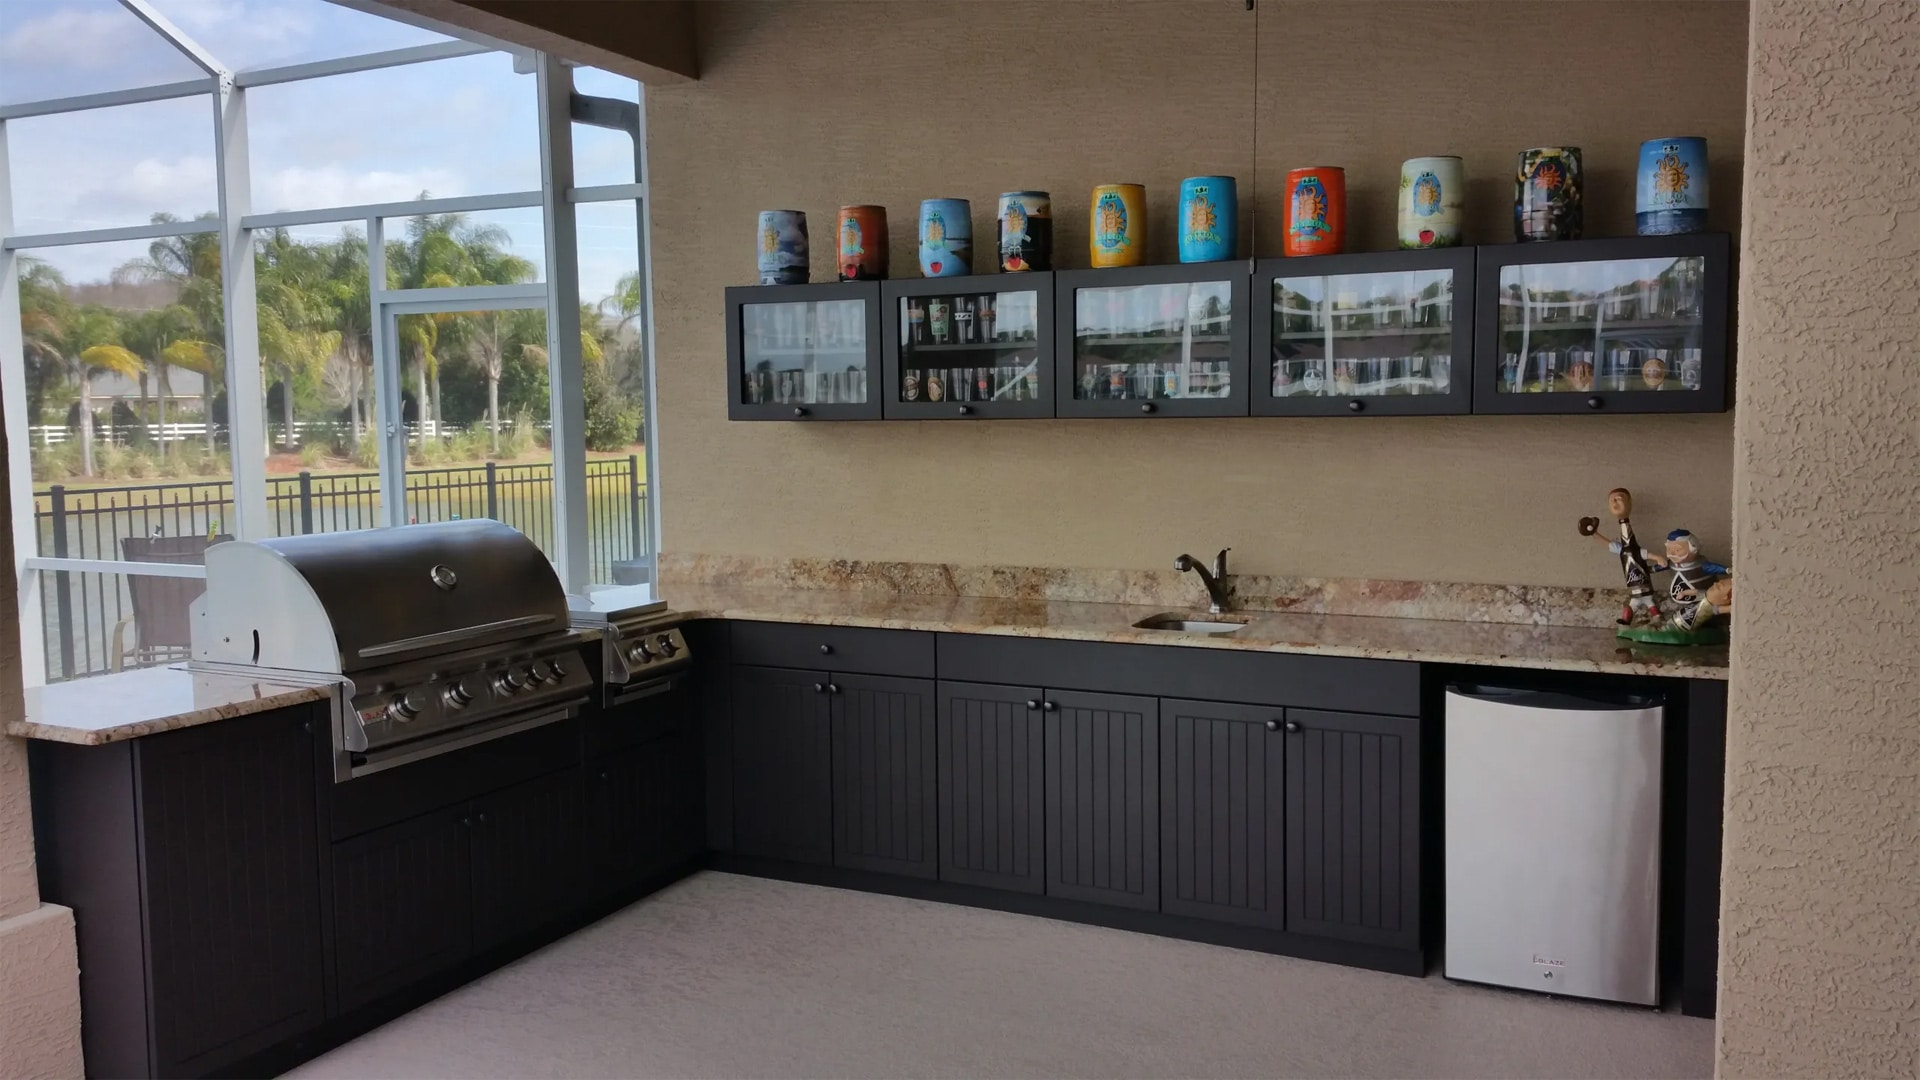 Outdoor kitchen with bar